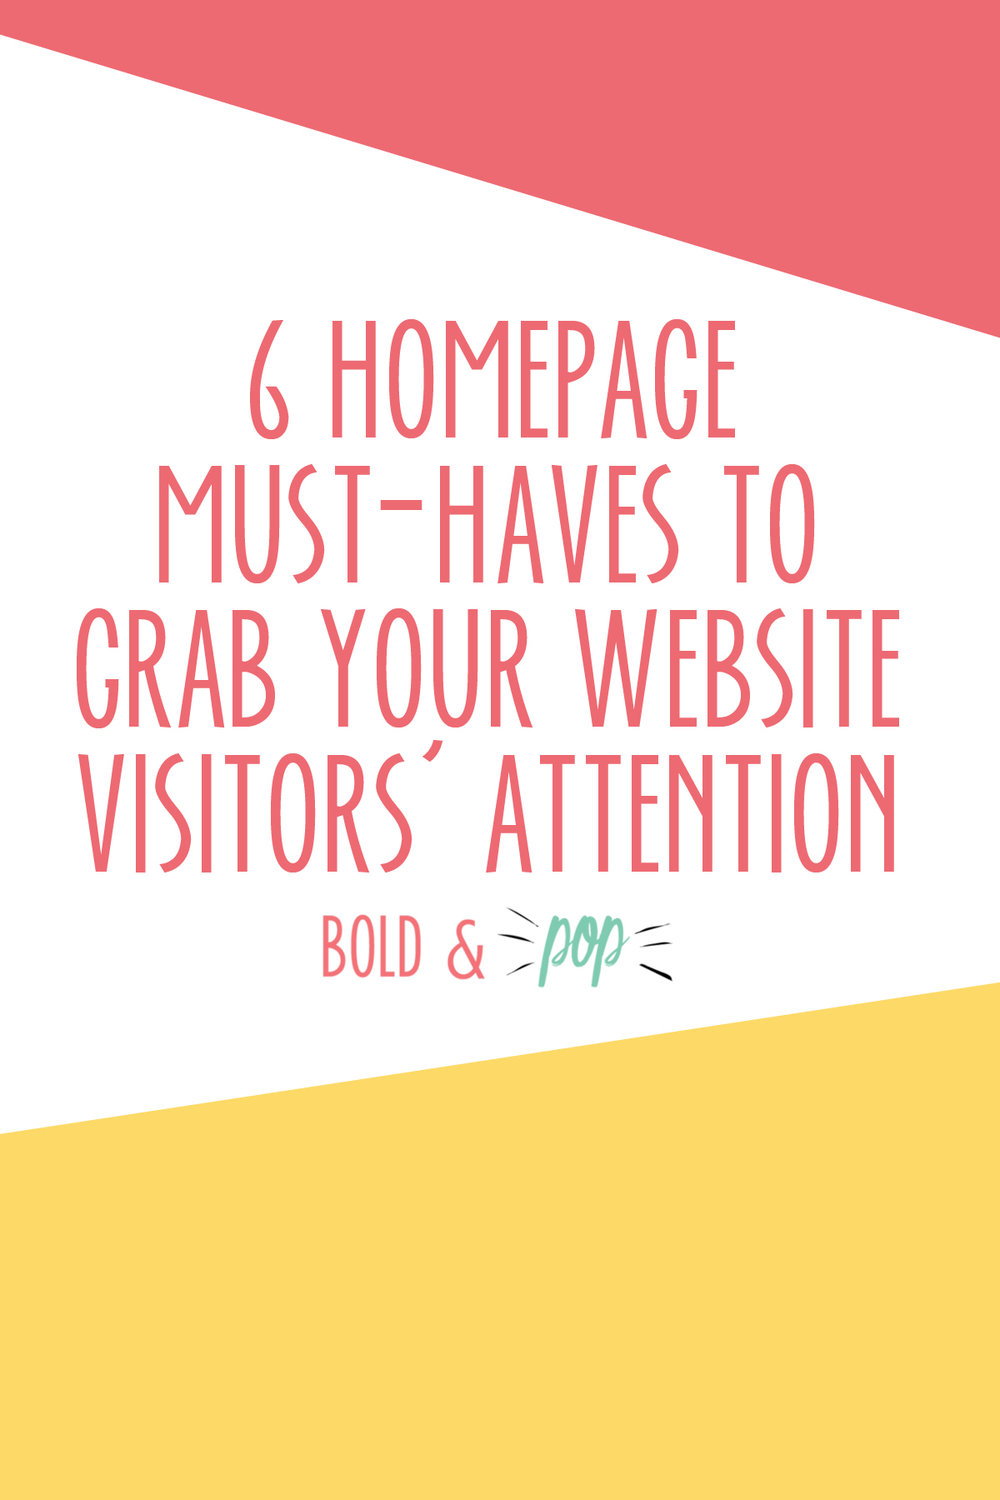 Bold & Pop : 6 Homepage Must-Haves to Grab your Website Visitors' Attention